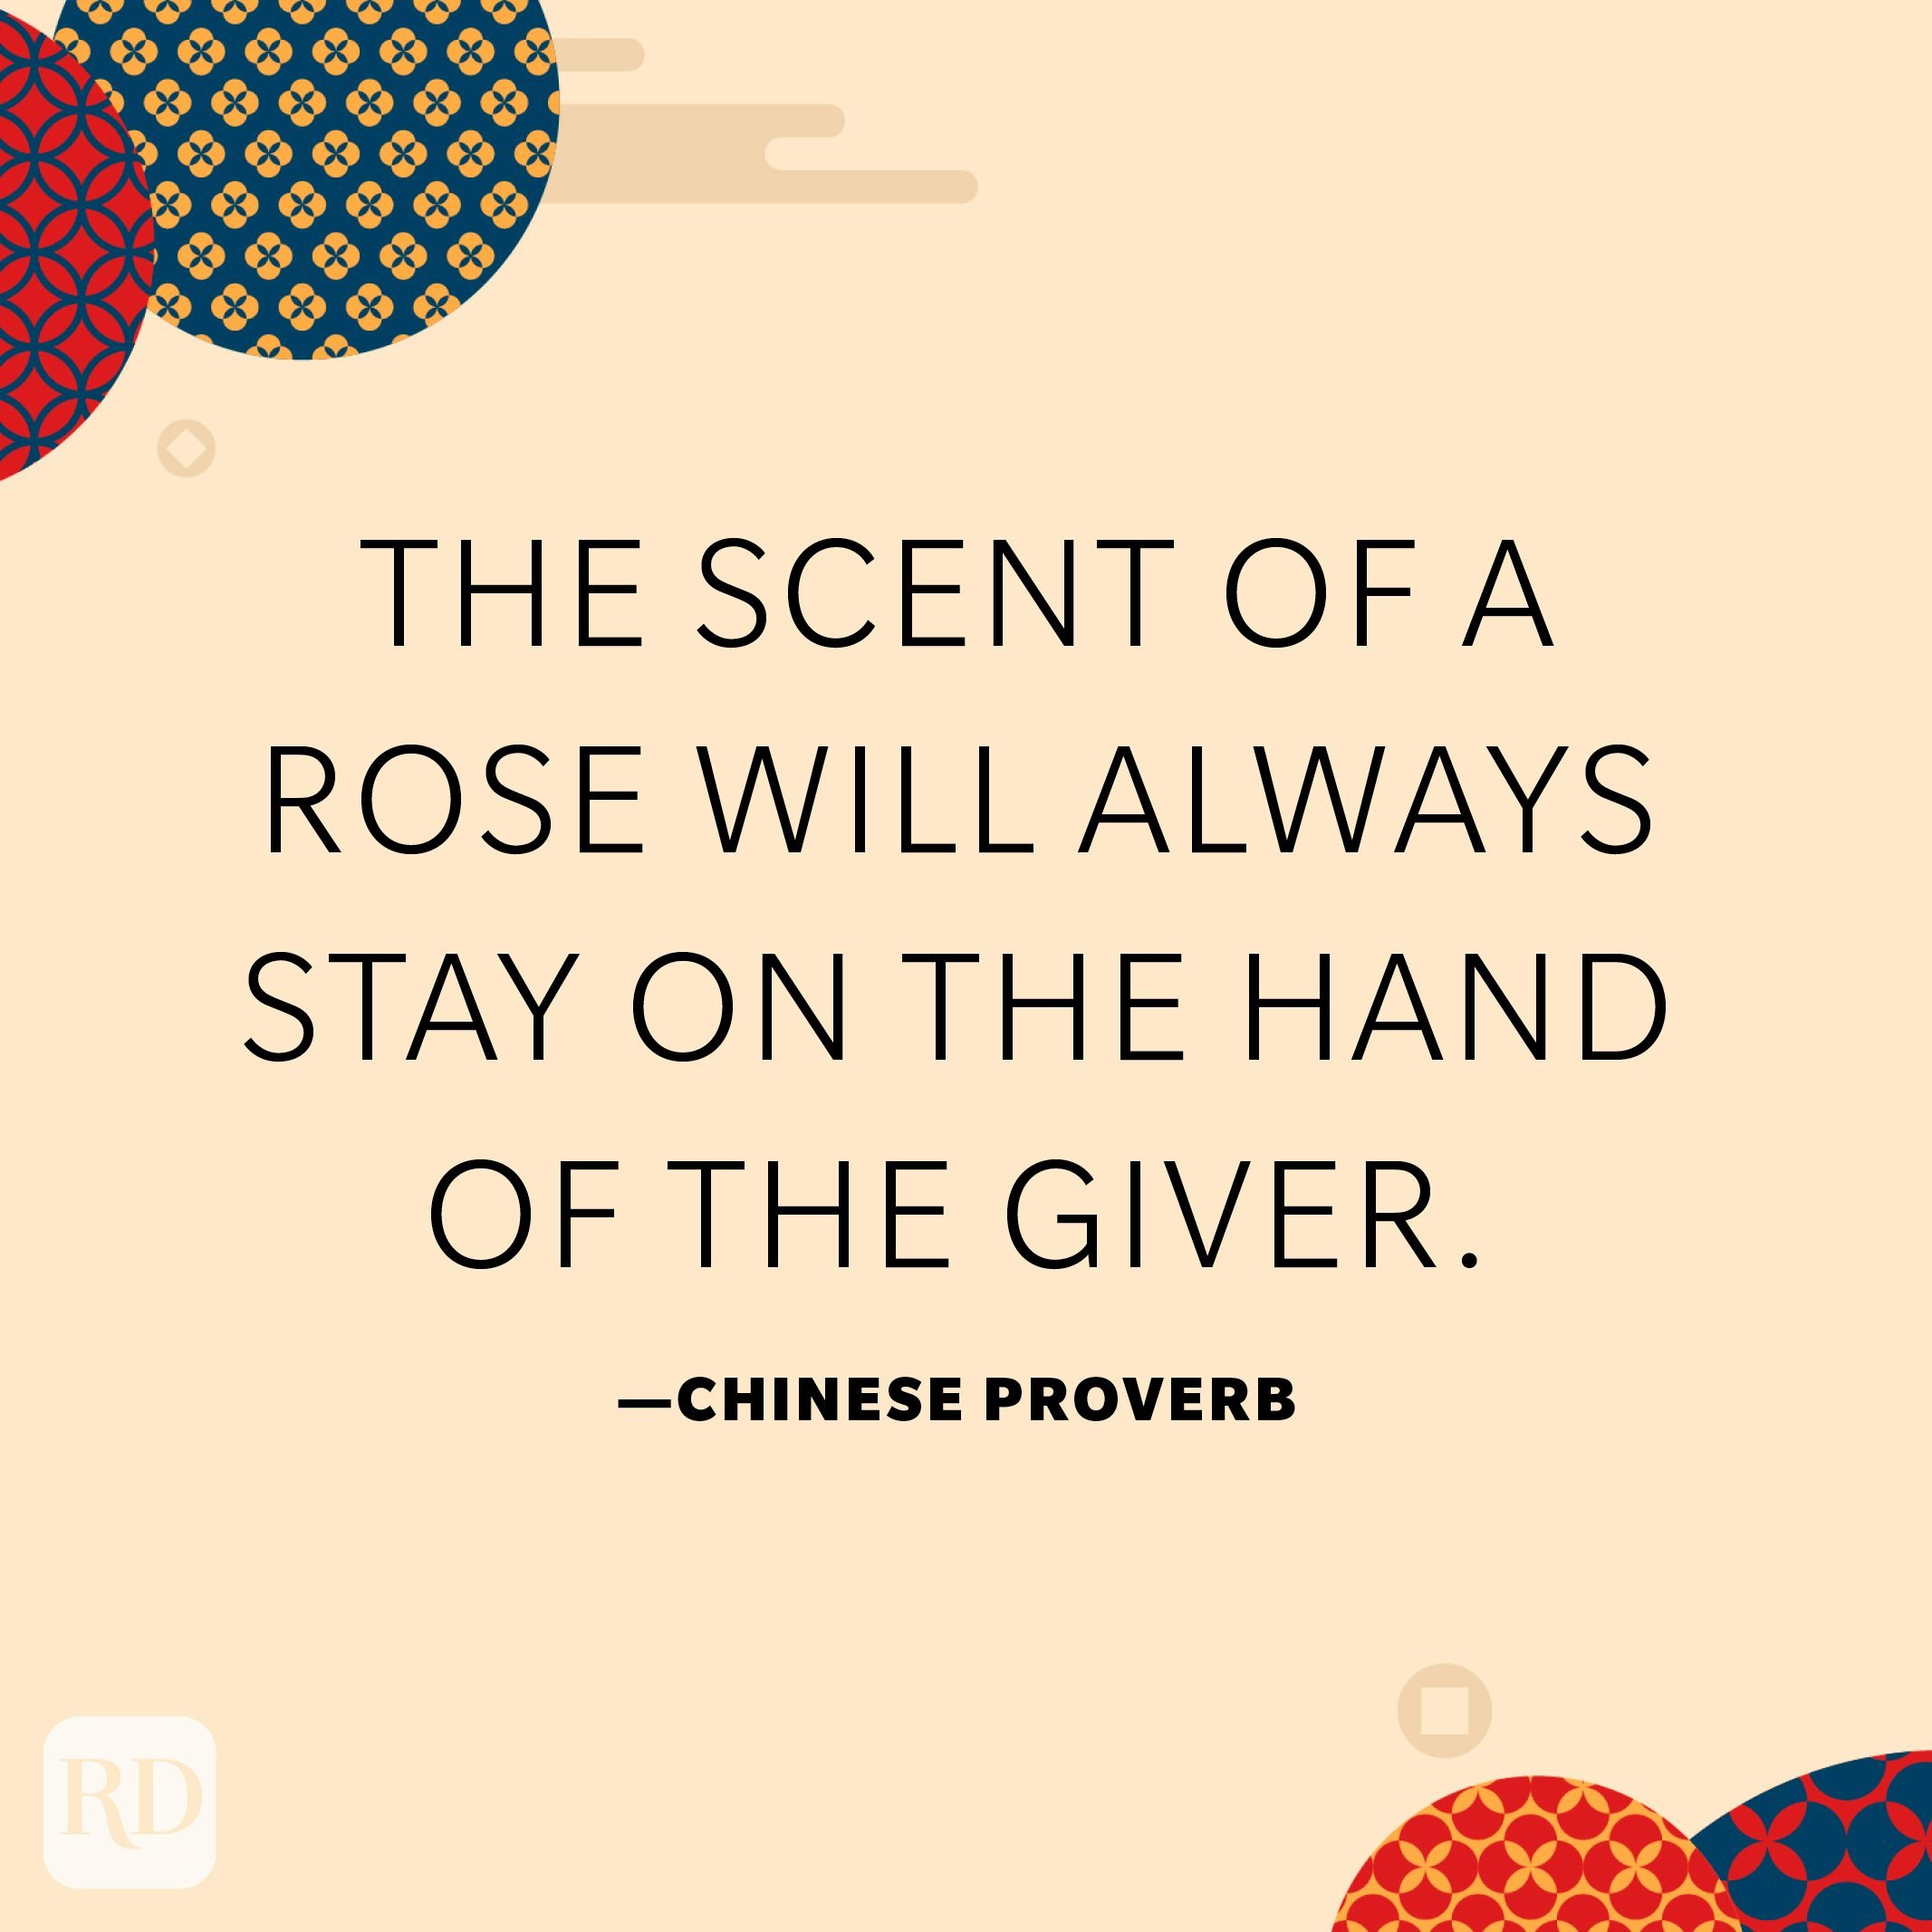 The scent of a rose will always stay on the hand of the giver